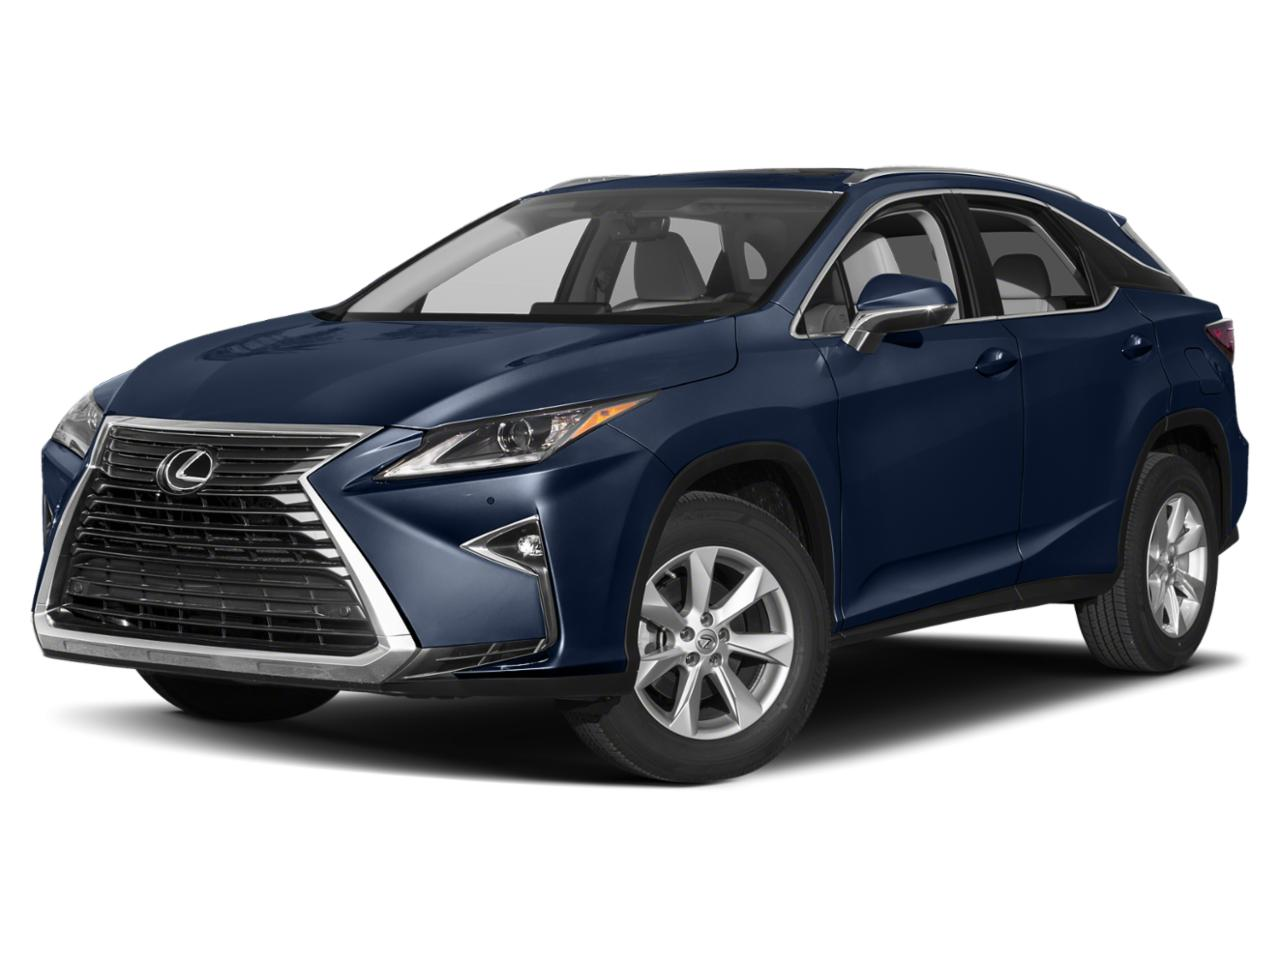 2018 Lexus RX 350 Vehicle Photo in Tucson, AZ 85712